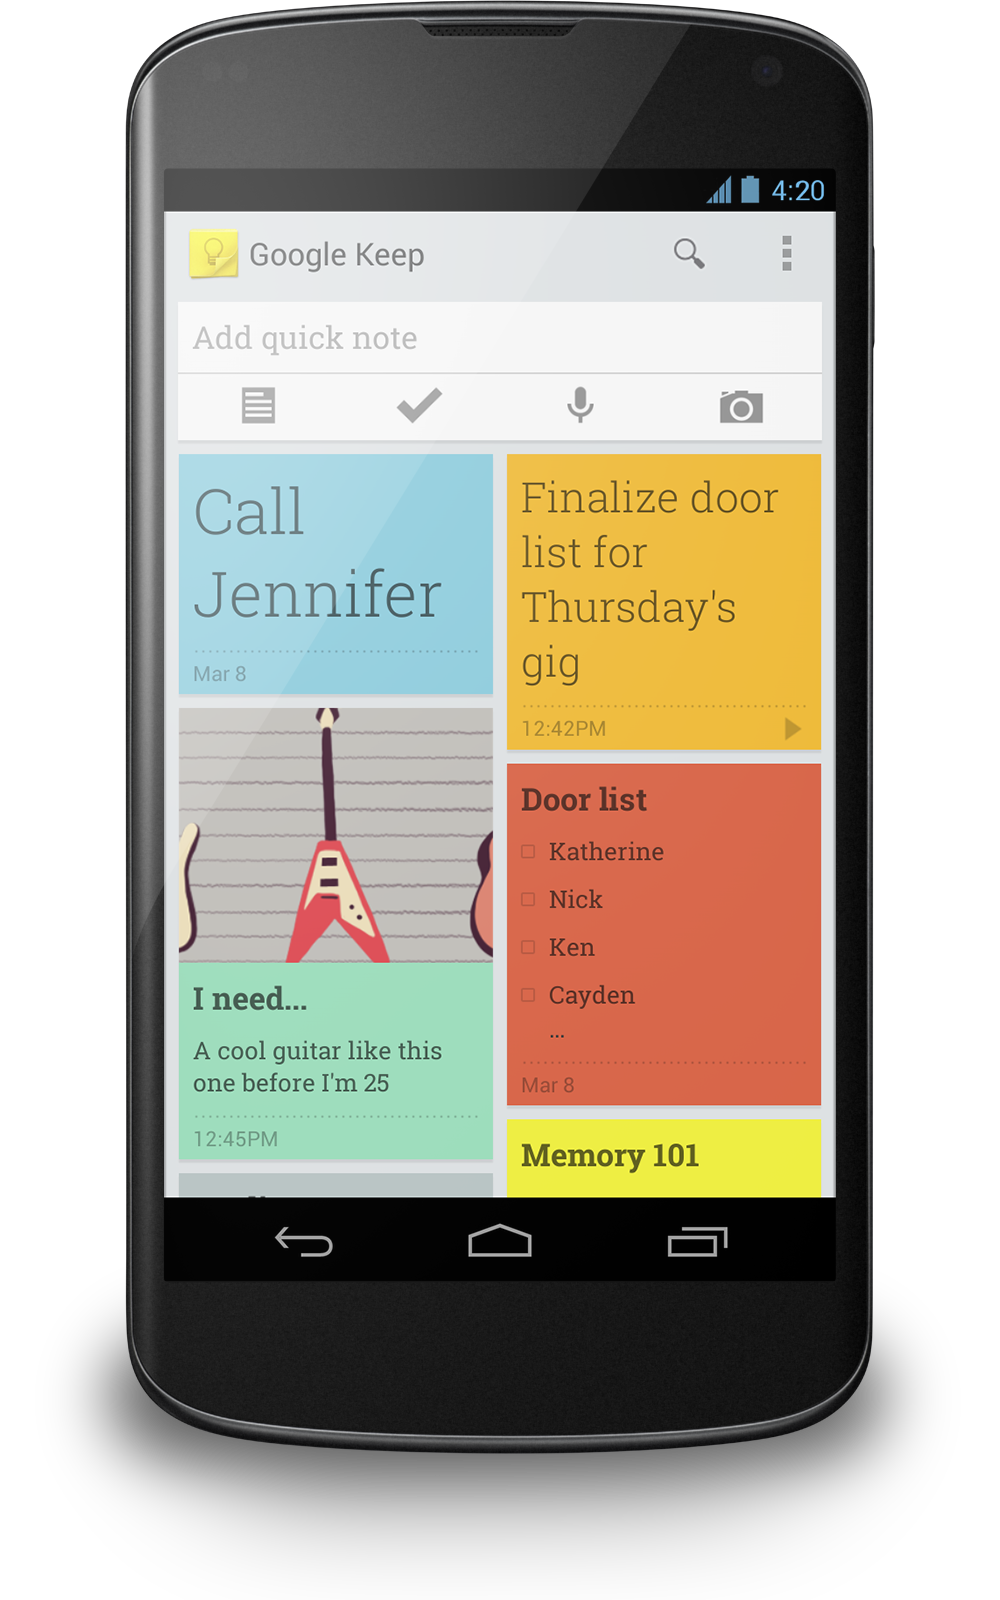 Google Keep Is Keeping Me Organized